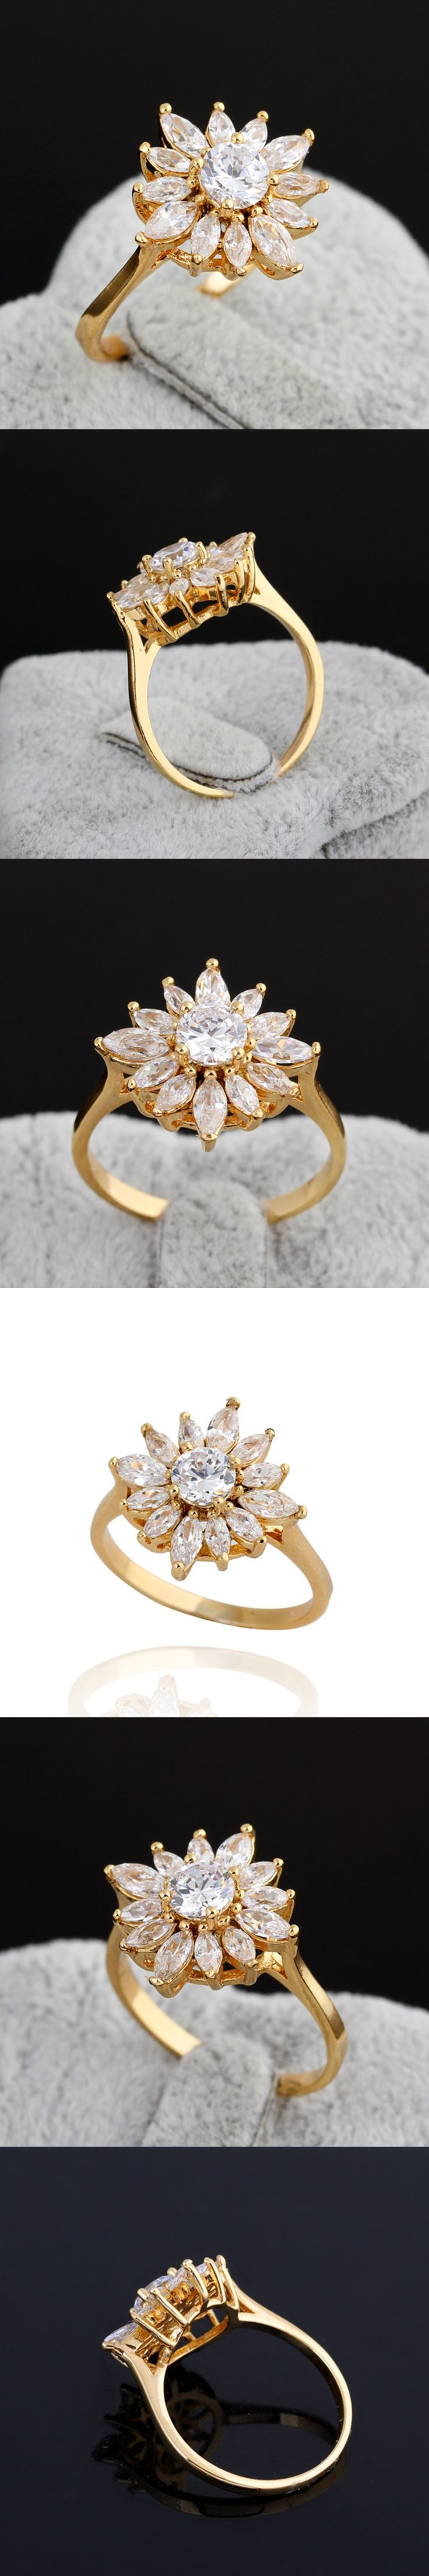 Hot Sell Delicate Rings For Women Shiny Flower Crystal Perlas Inlay Finger Ring  Gold Jewelry Romantic Wedding Jewelry   SL